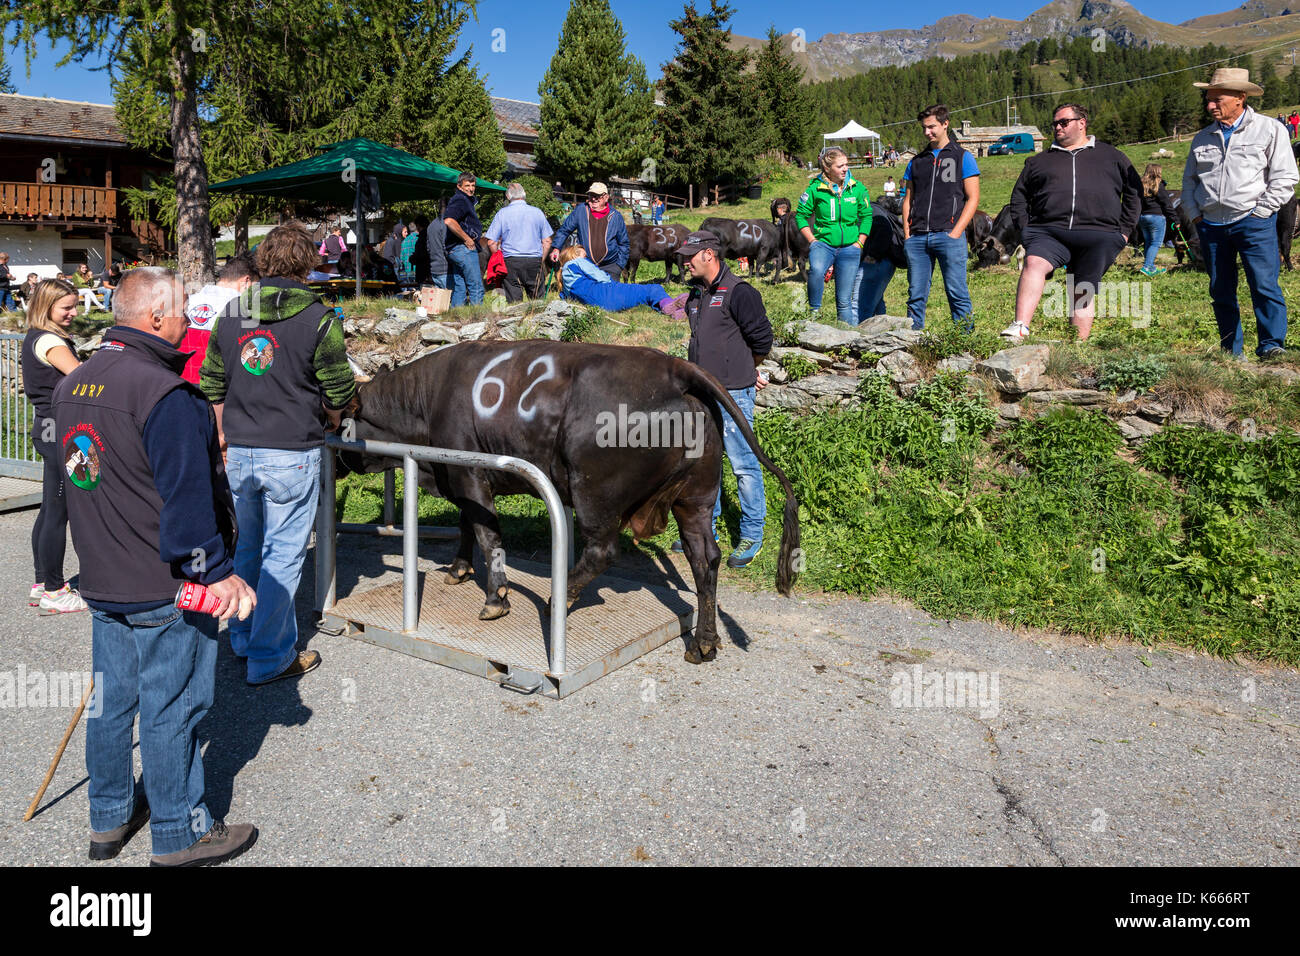 A cow being weighted prior to a traditional cow fight, Brusson, Aosta Valley, Italy - Stock Image